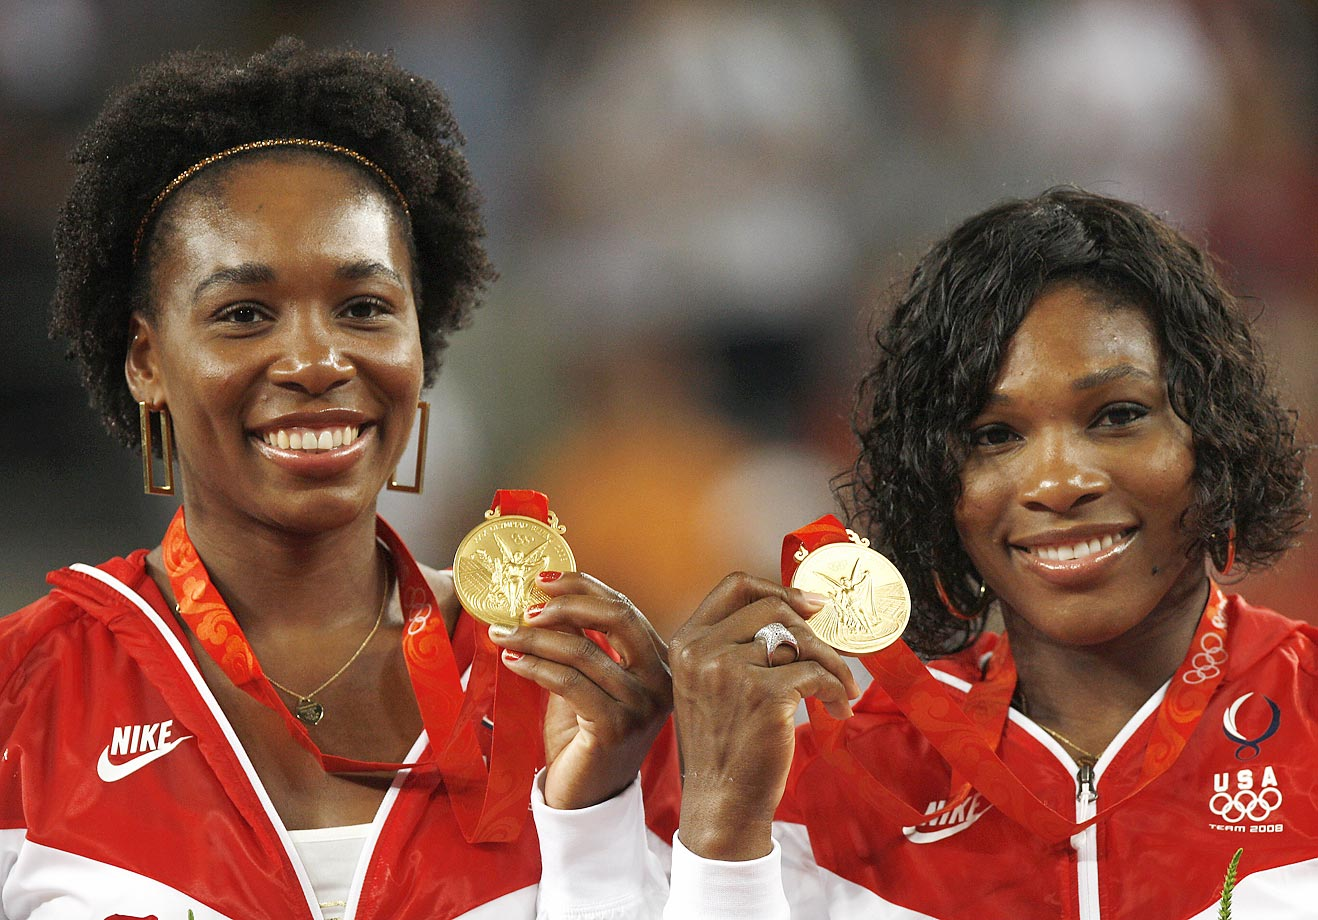 The victory was their second consecutive gold medal in doubles.